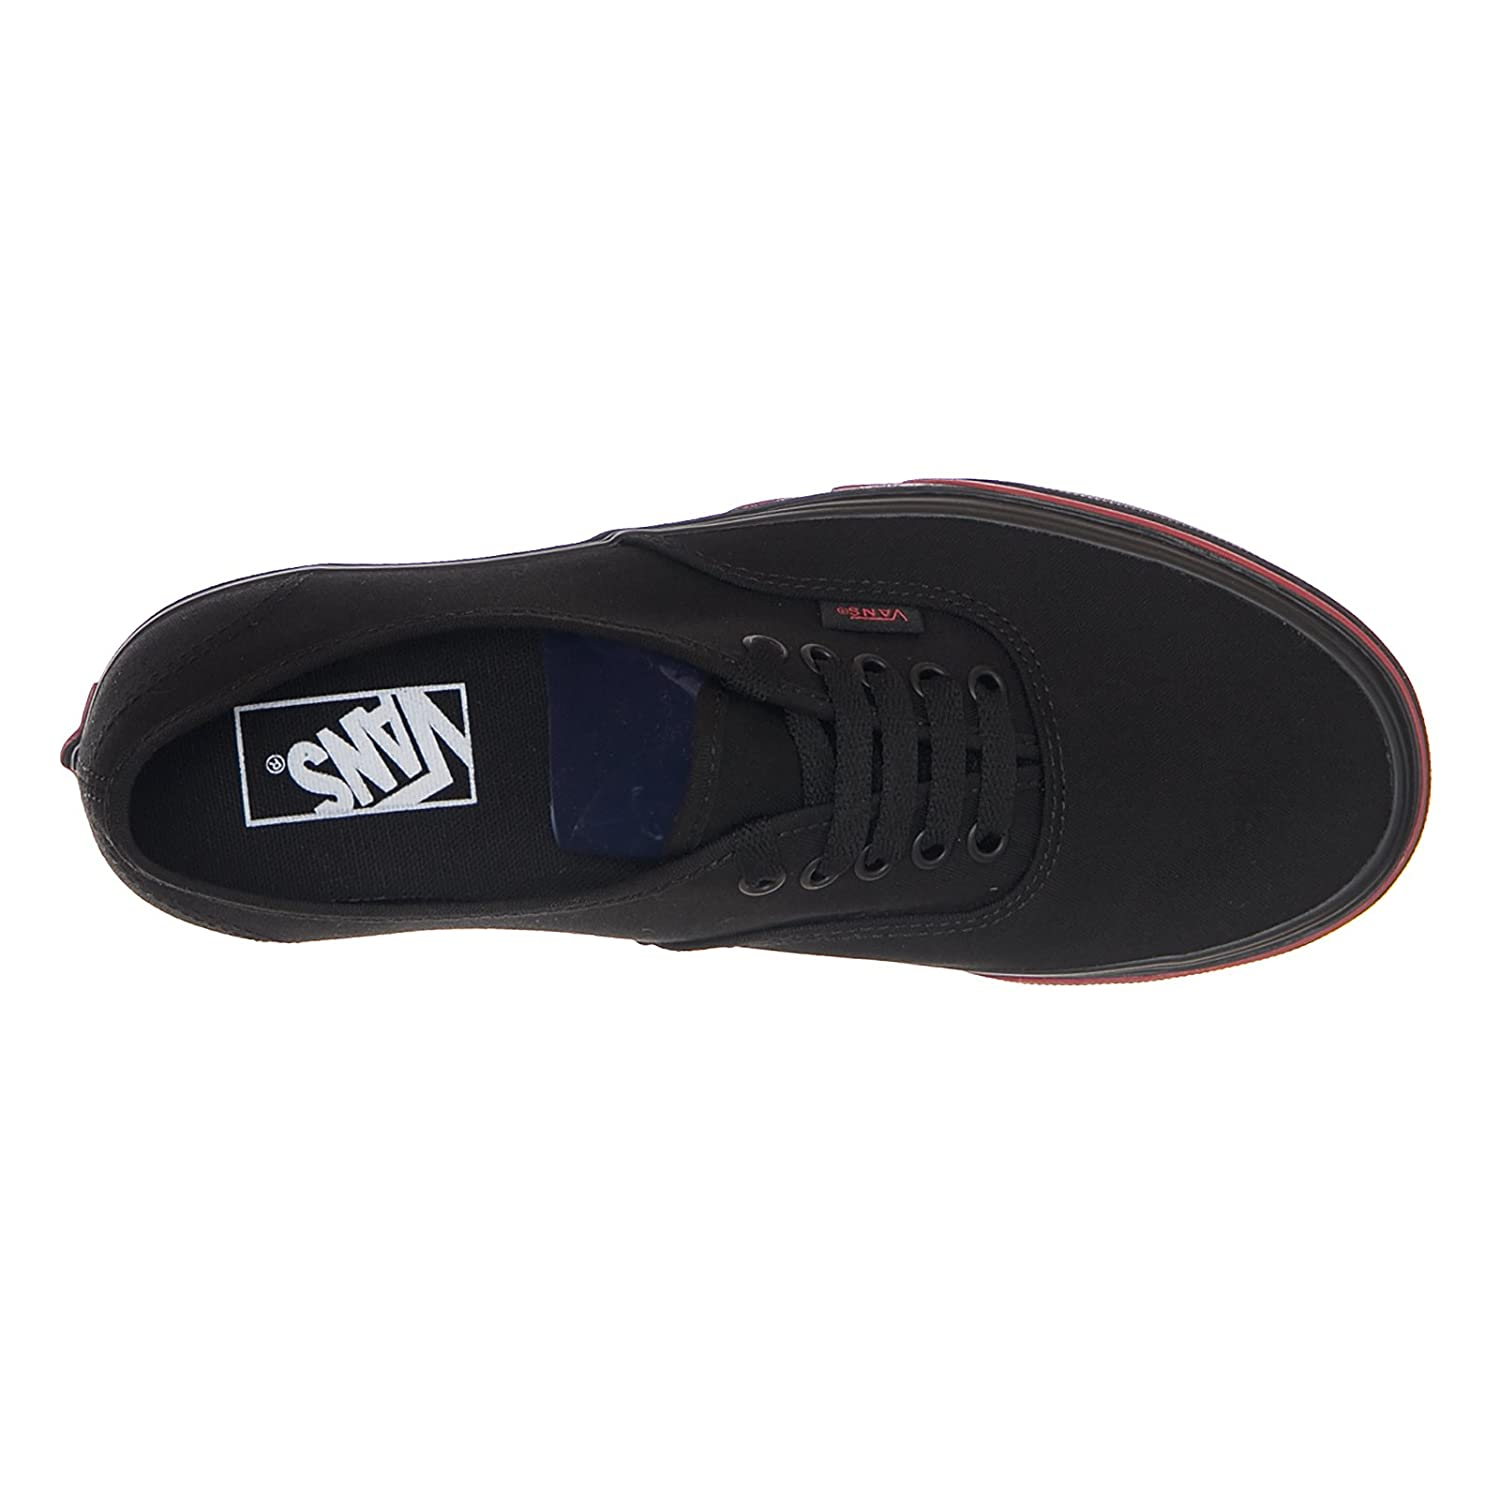 d1fcb23f55d Vans Authentic (Flame Wall) - Black RED (10.5 UK)  Amazon.co.uk  Shoes    Bags